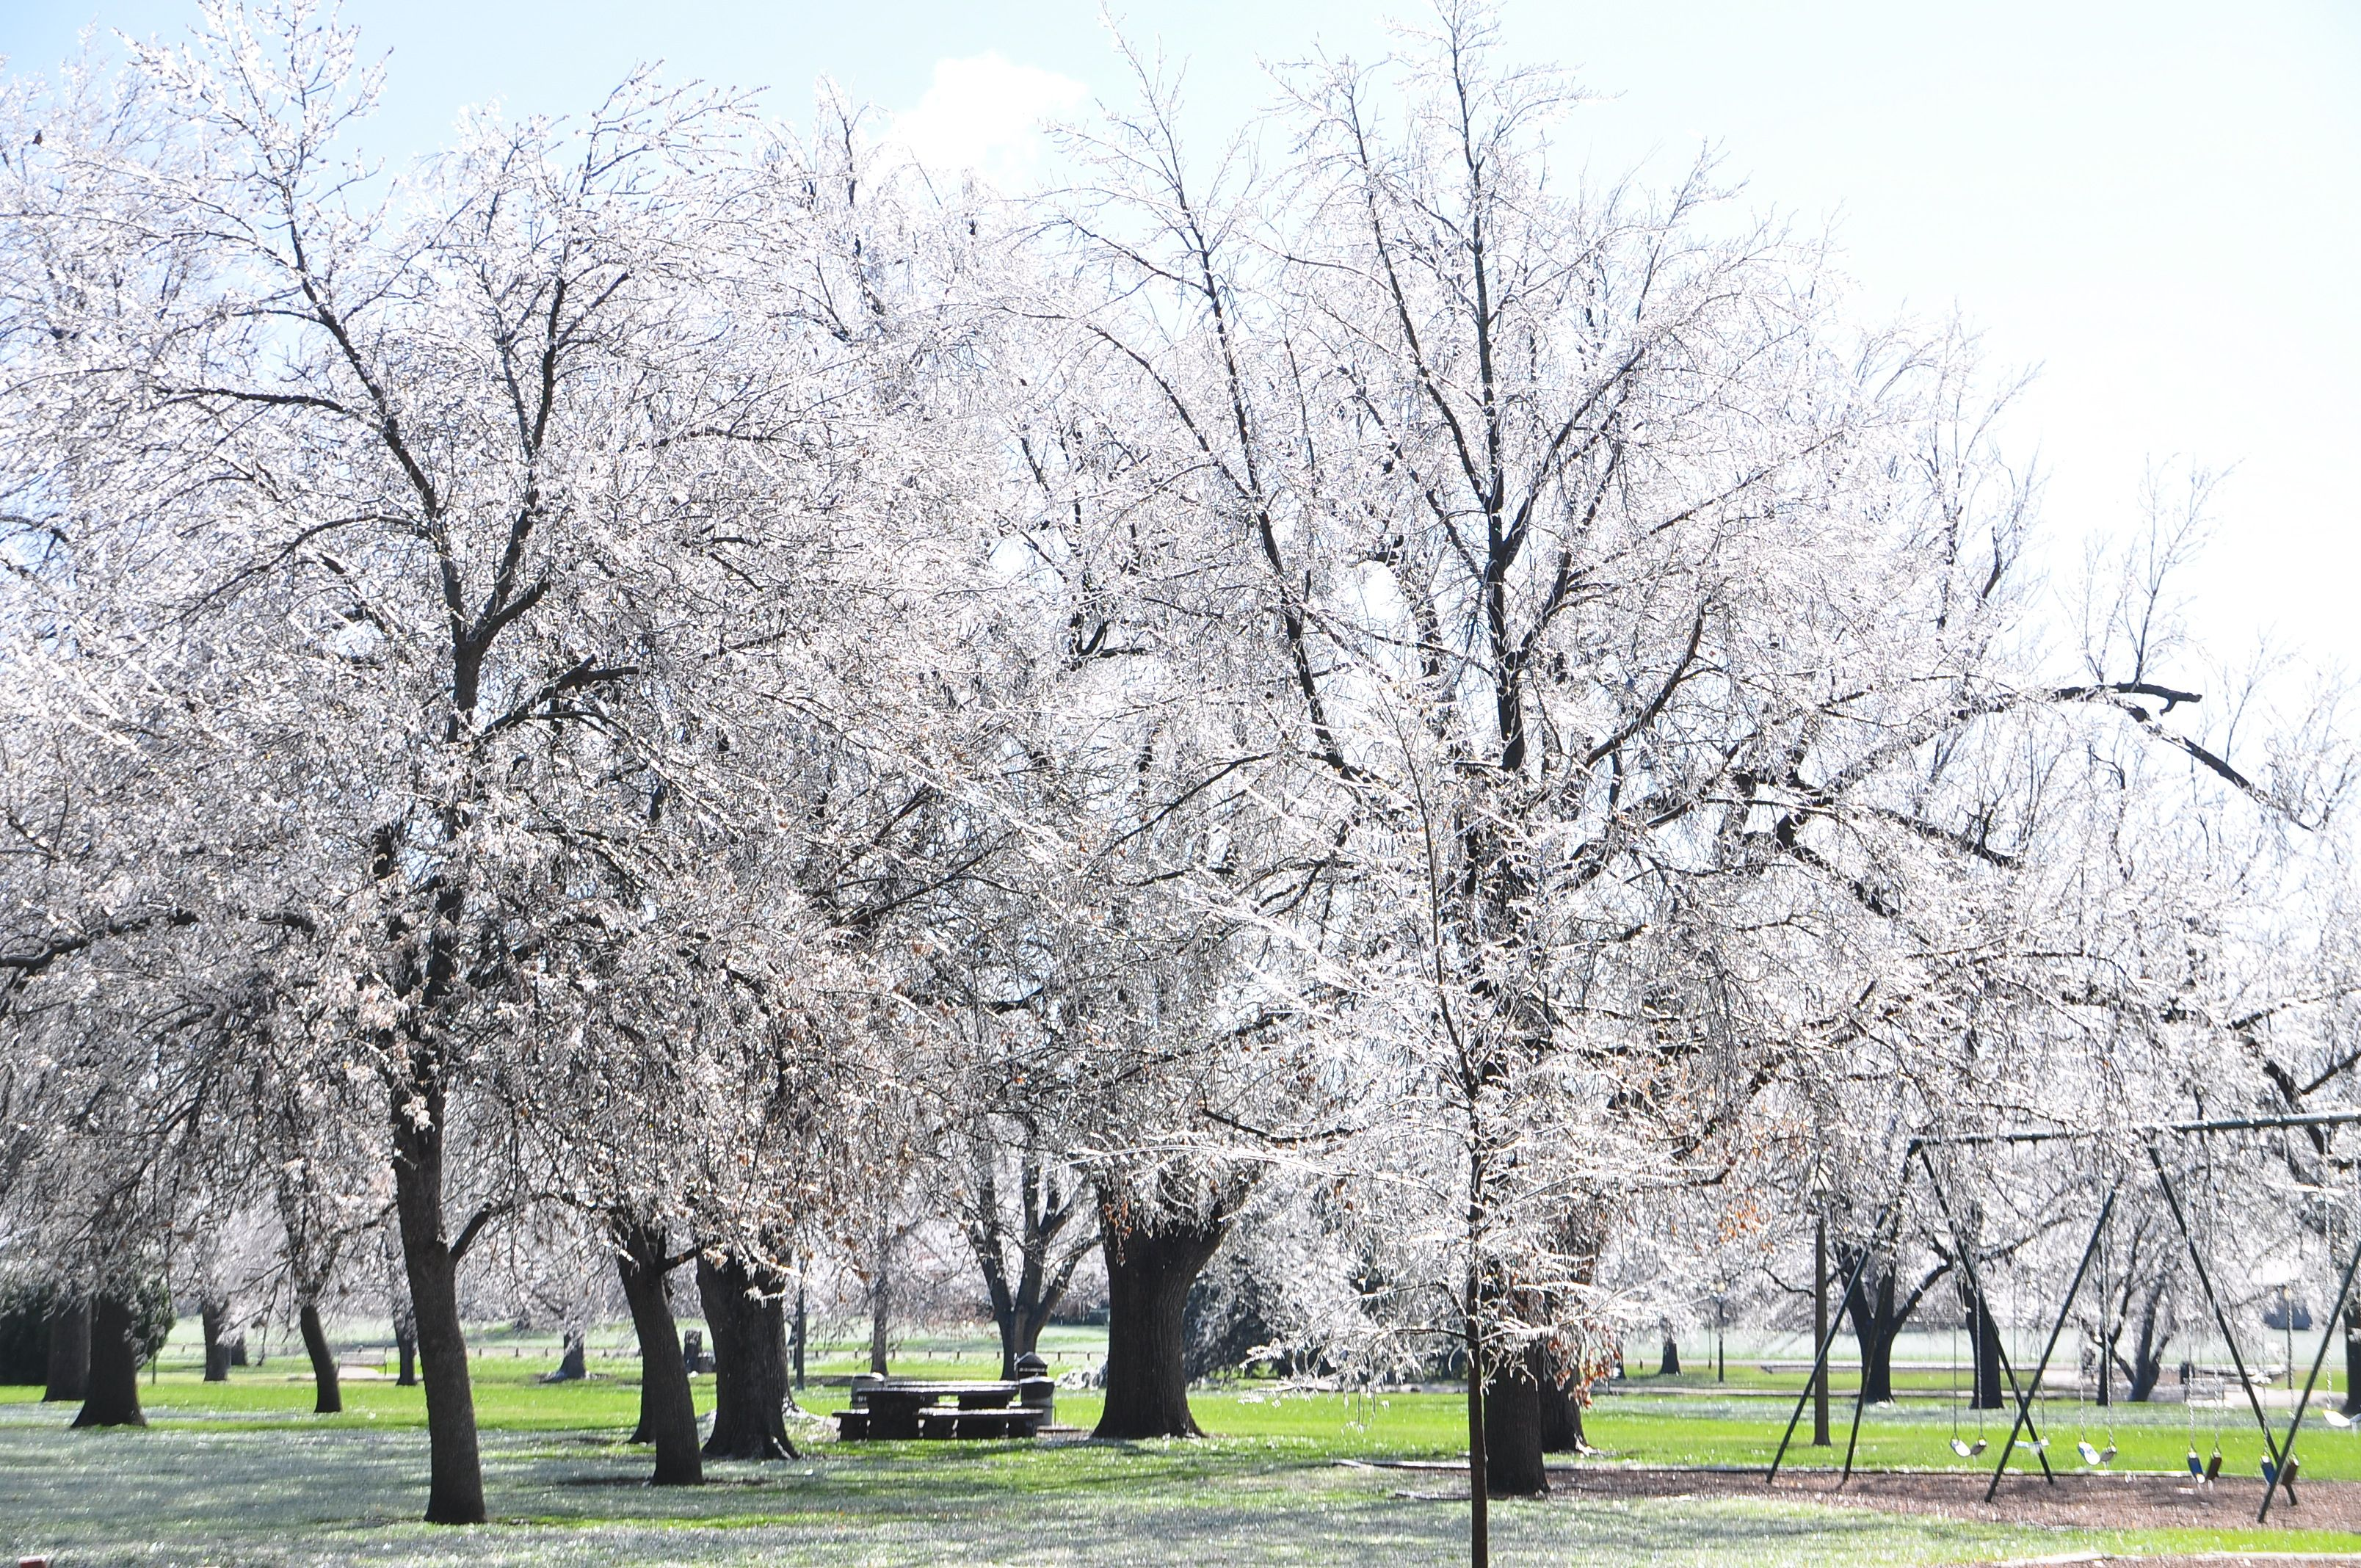 This picture almost captures the spectacular glistening taking place in Lakeside Park this morning.